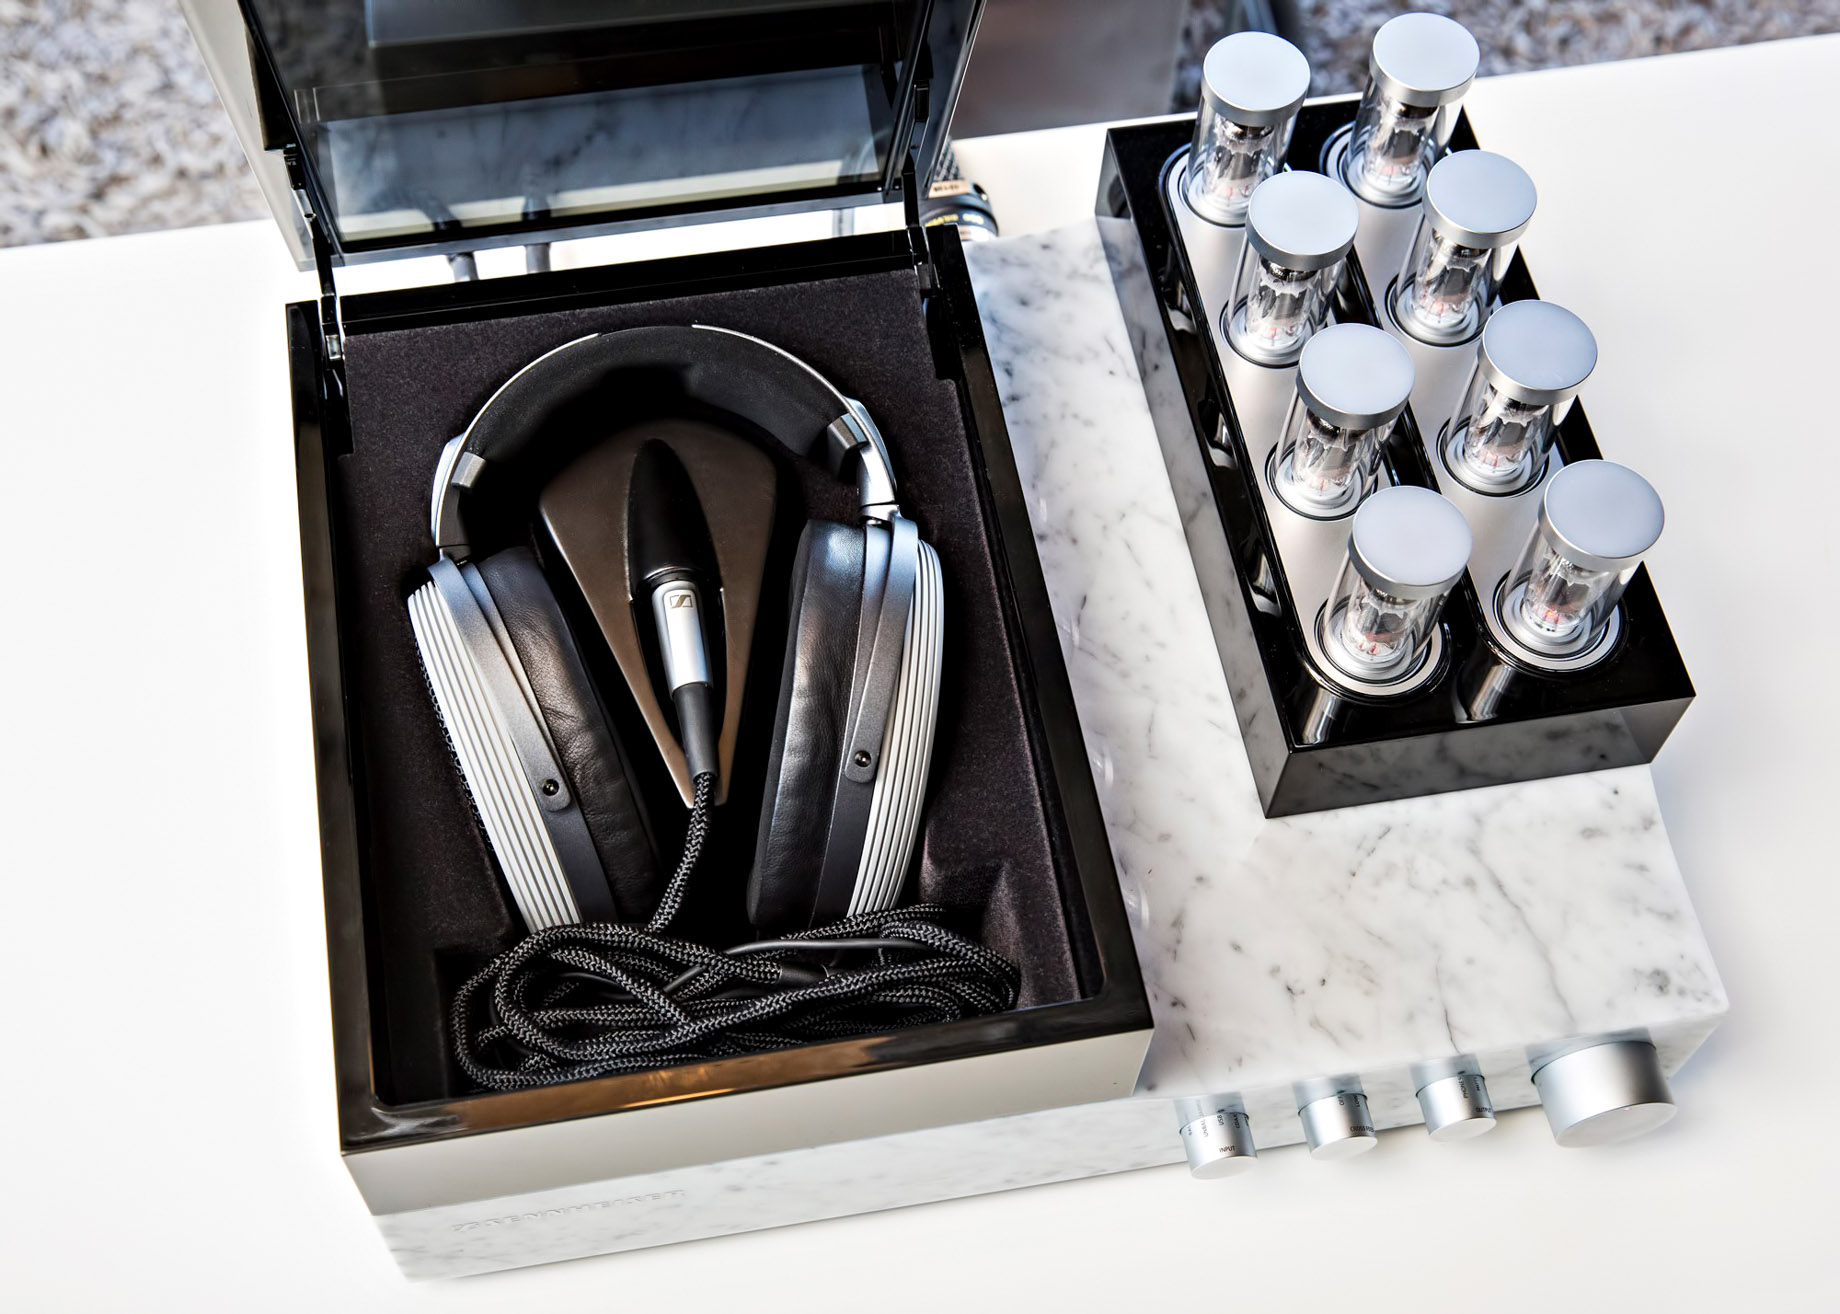 Sennheiser Orpheus Headphones - Dreaming Big - 6 Luxury Items You Could Purchase if Money Was No Object